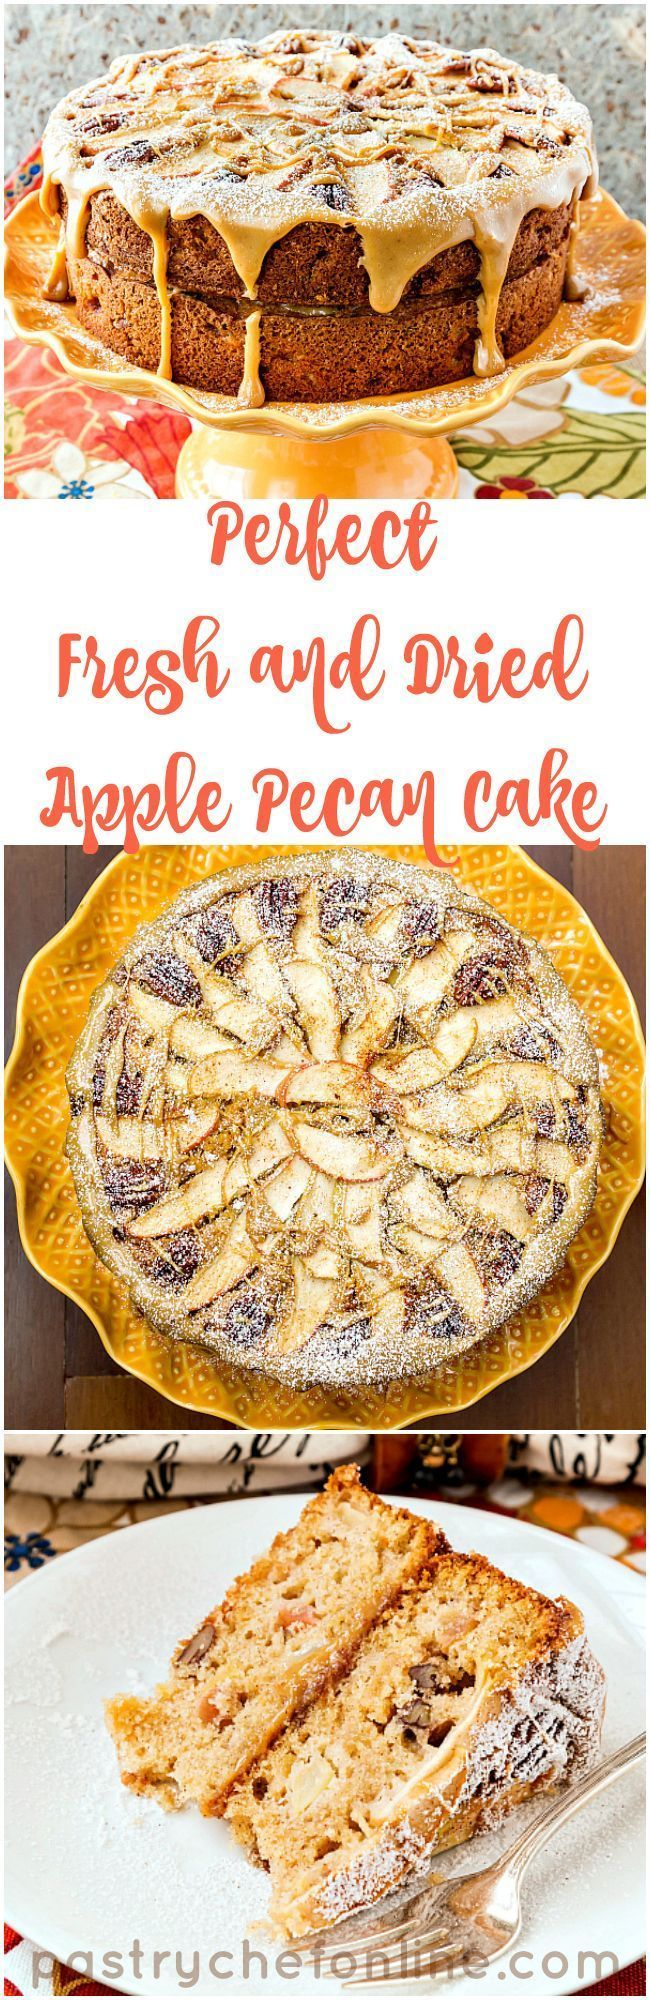 "This perfect fresh and dried apple and pecan cake recipe is one you need to have in your recipe file. With a fruit and nut-embellished top layer, this ""naked cake"" is both rustic and elegant. The dulce de leche glaze is the literal and figurative icing on the cake! 